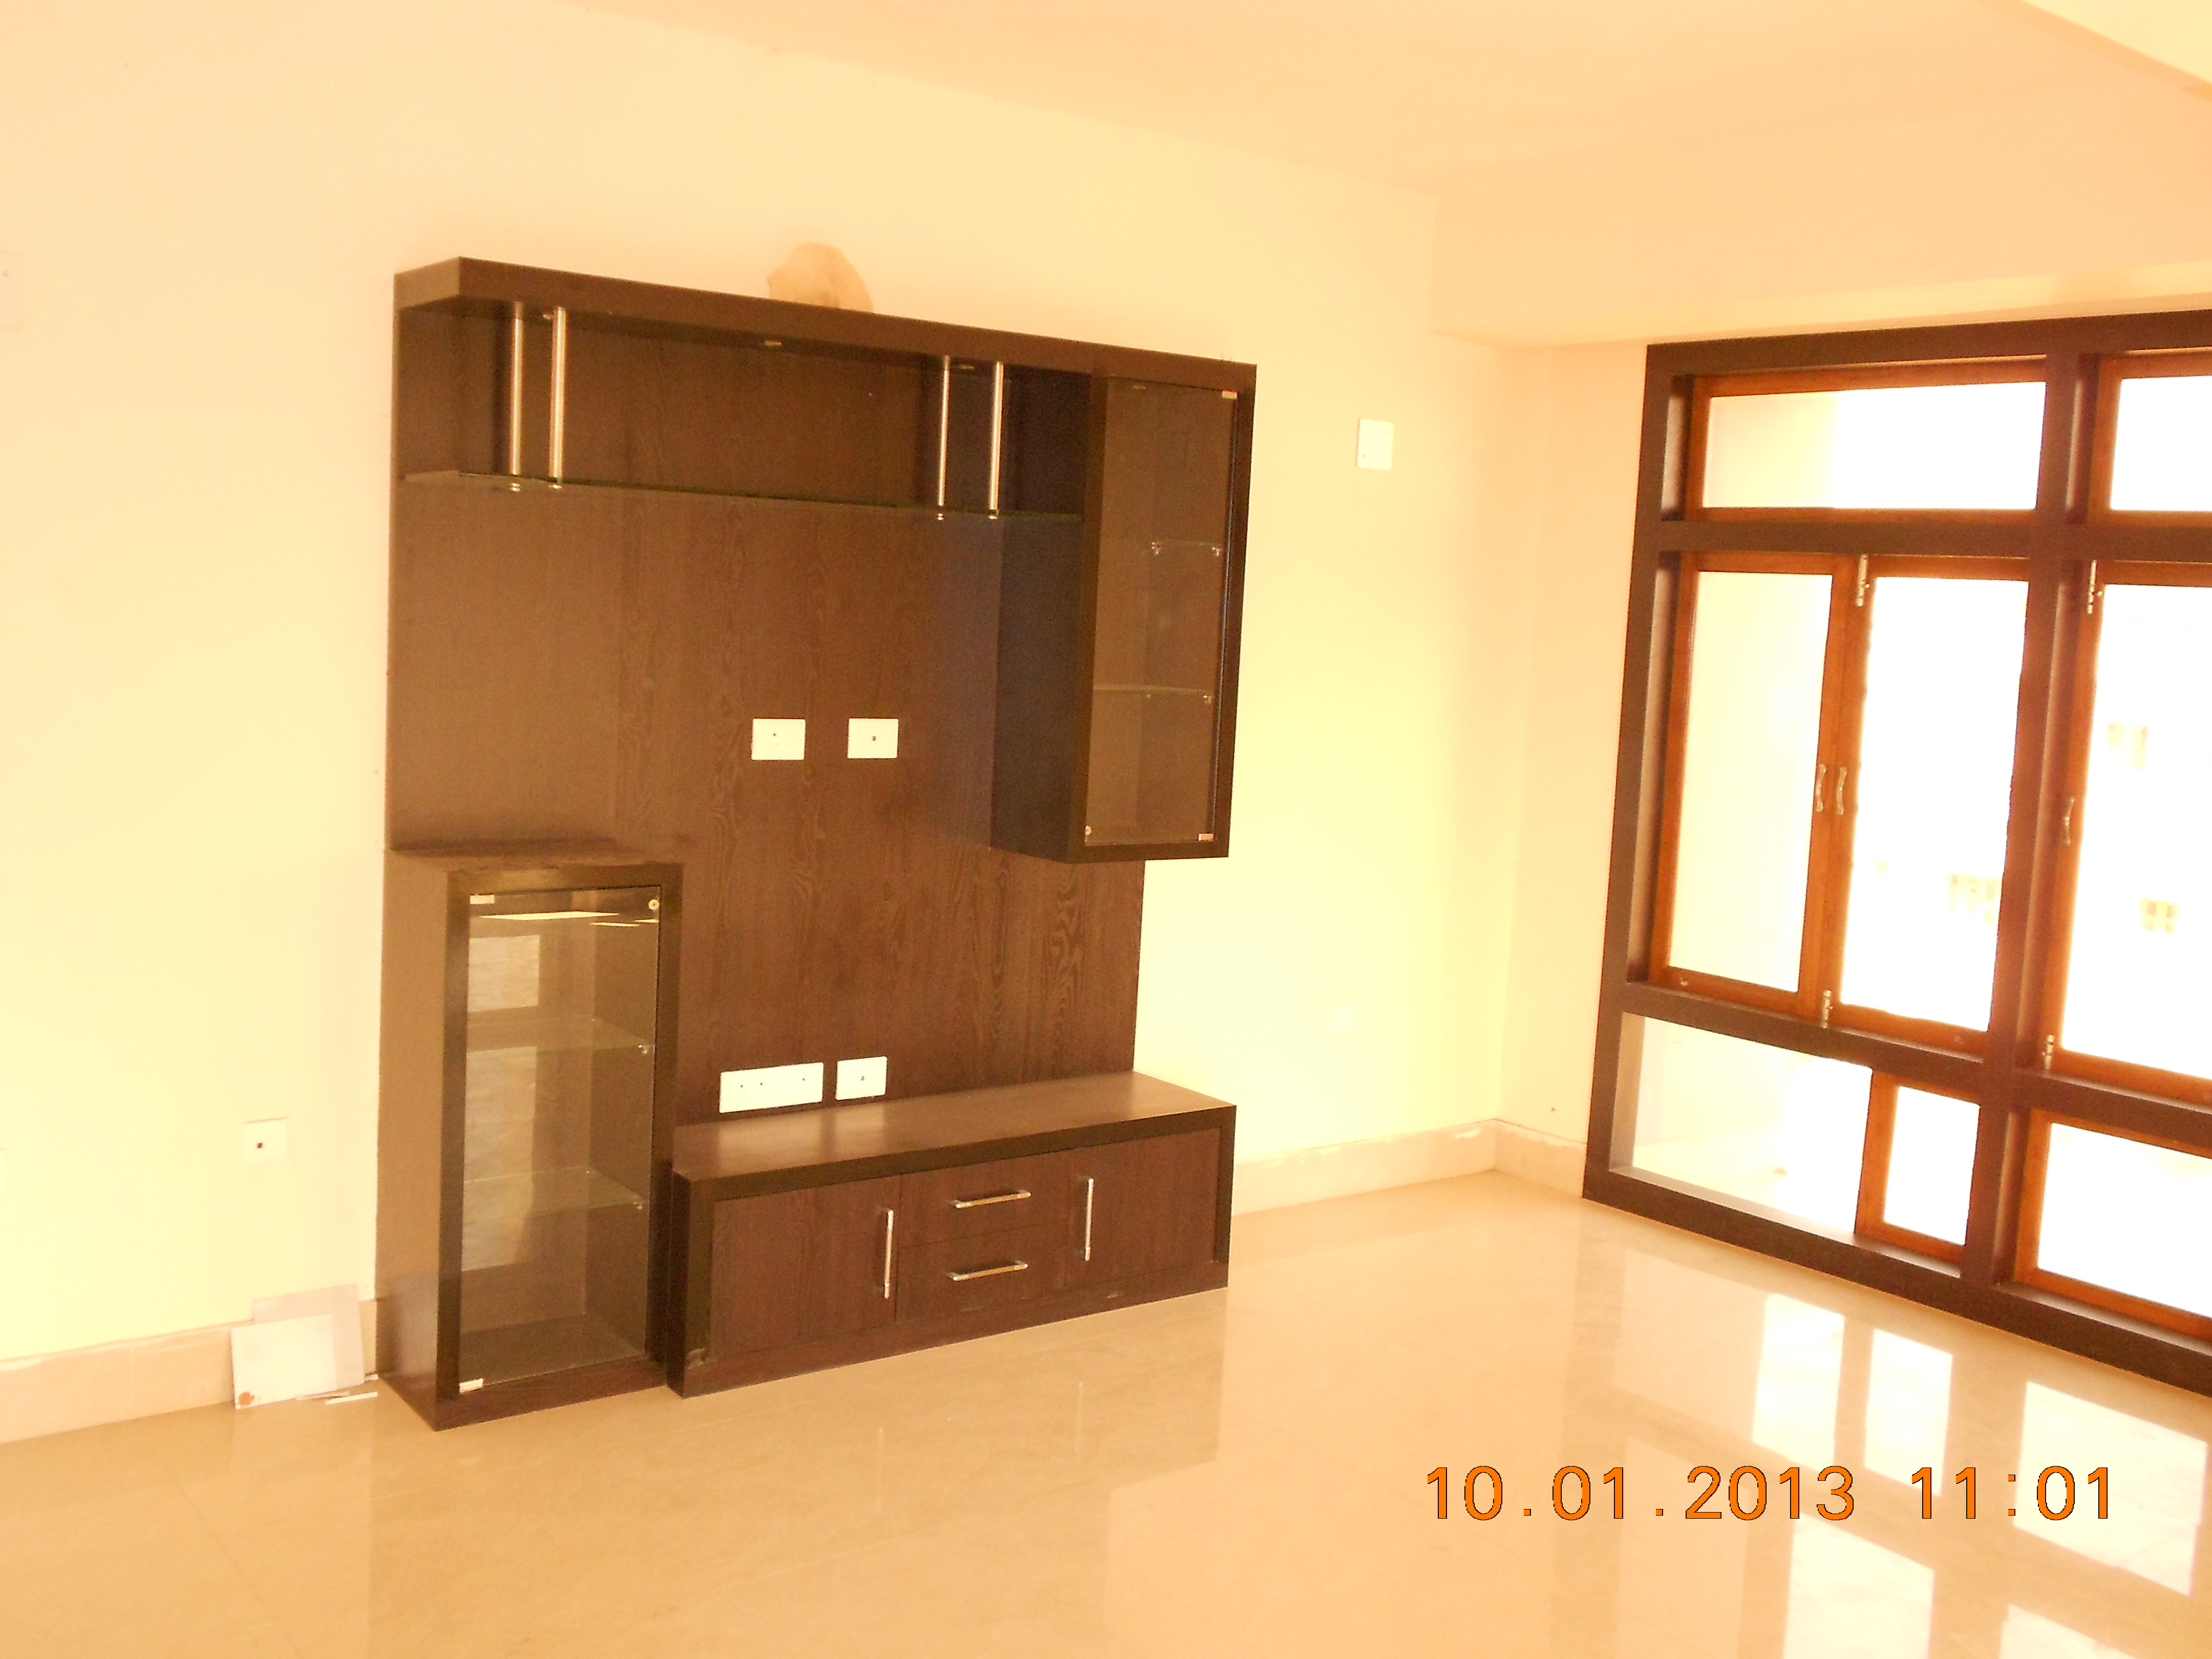 Furniture for flats Smart This Piece Of Furniture Will Accommodate Your Tv Set Along With Its Accessories The Cabinets That u2026 Continue Reading Multipurpose Tv Unit Ideal For Small Dhinom4niacom Modular Kitchen Furniture Design Efficient Enterprise